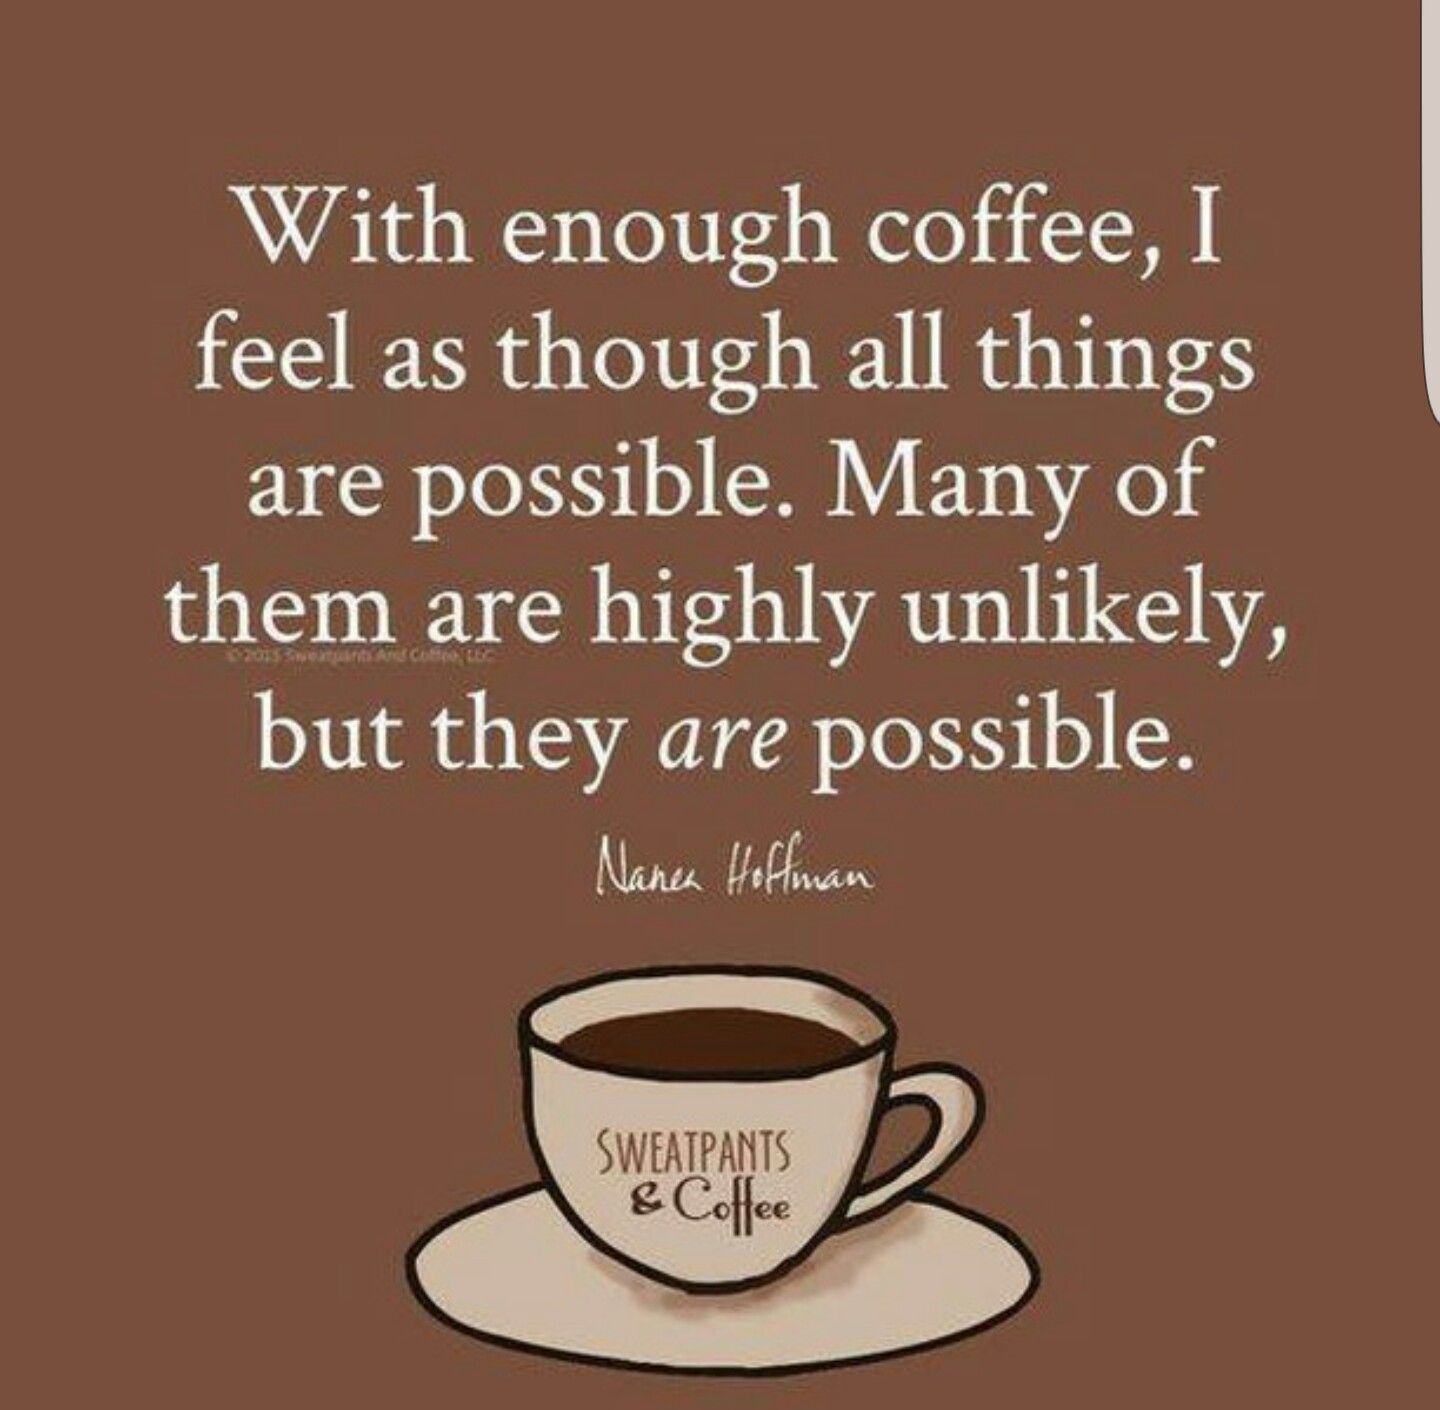 Anything is possible with coffee